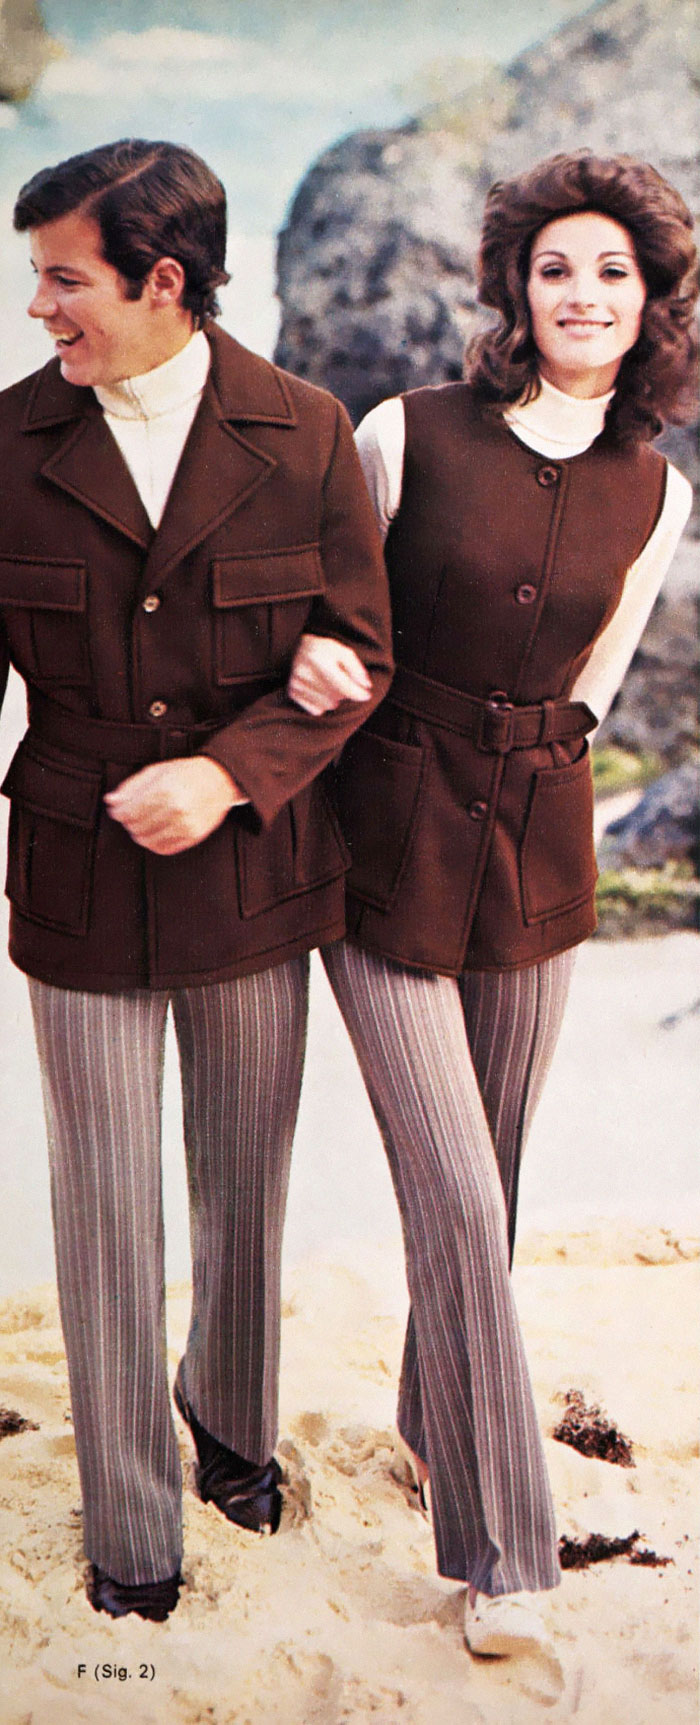 crazy-student-fashions-70s-6.jpg